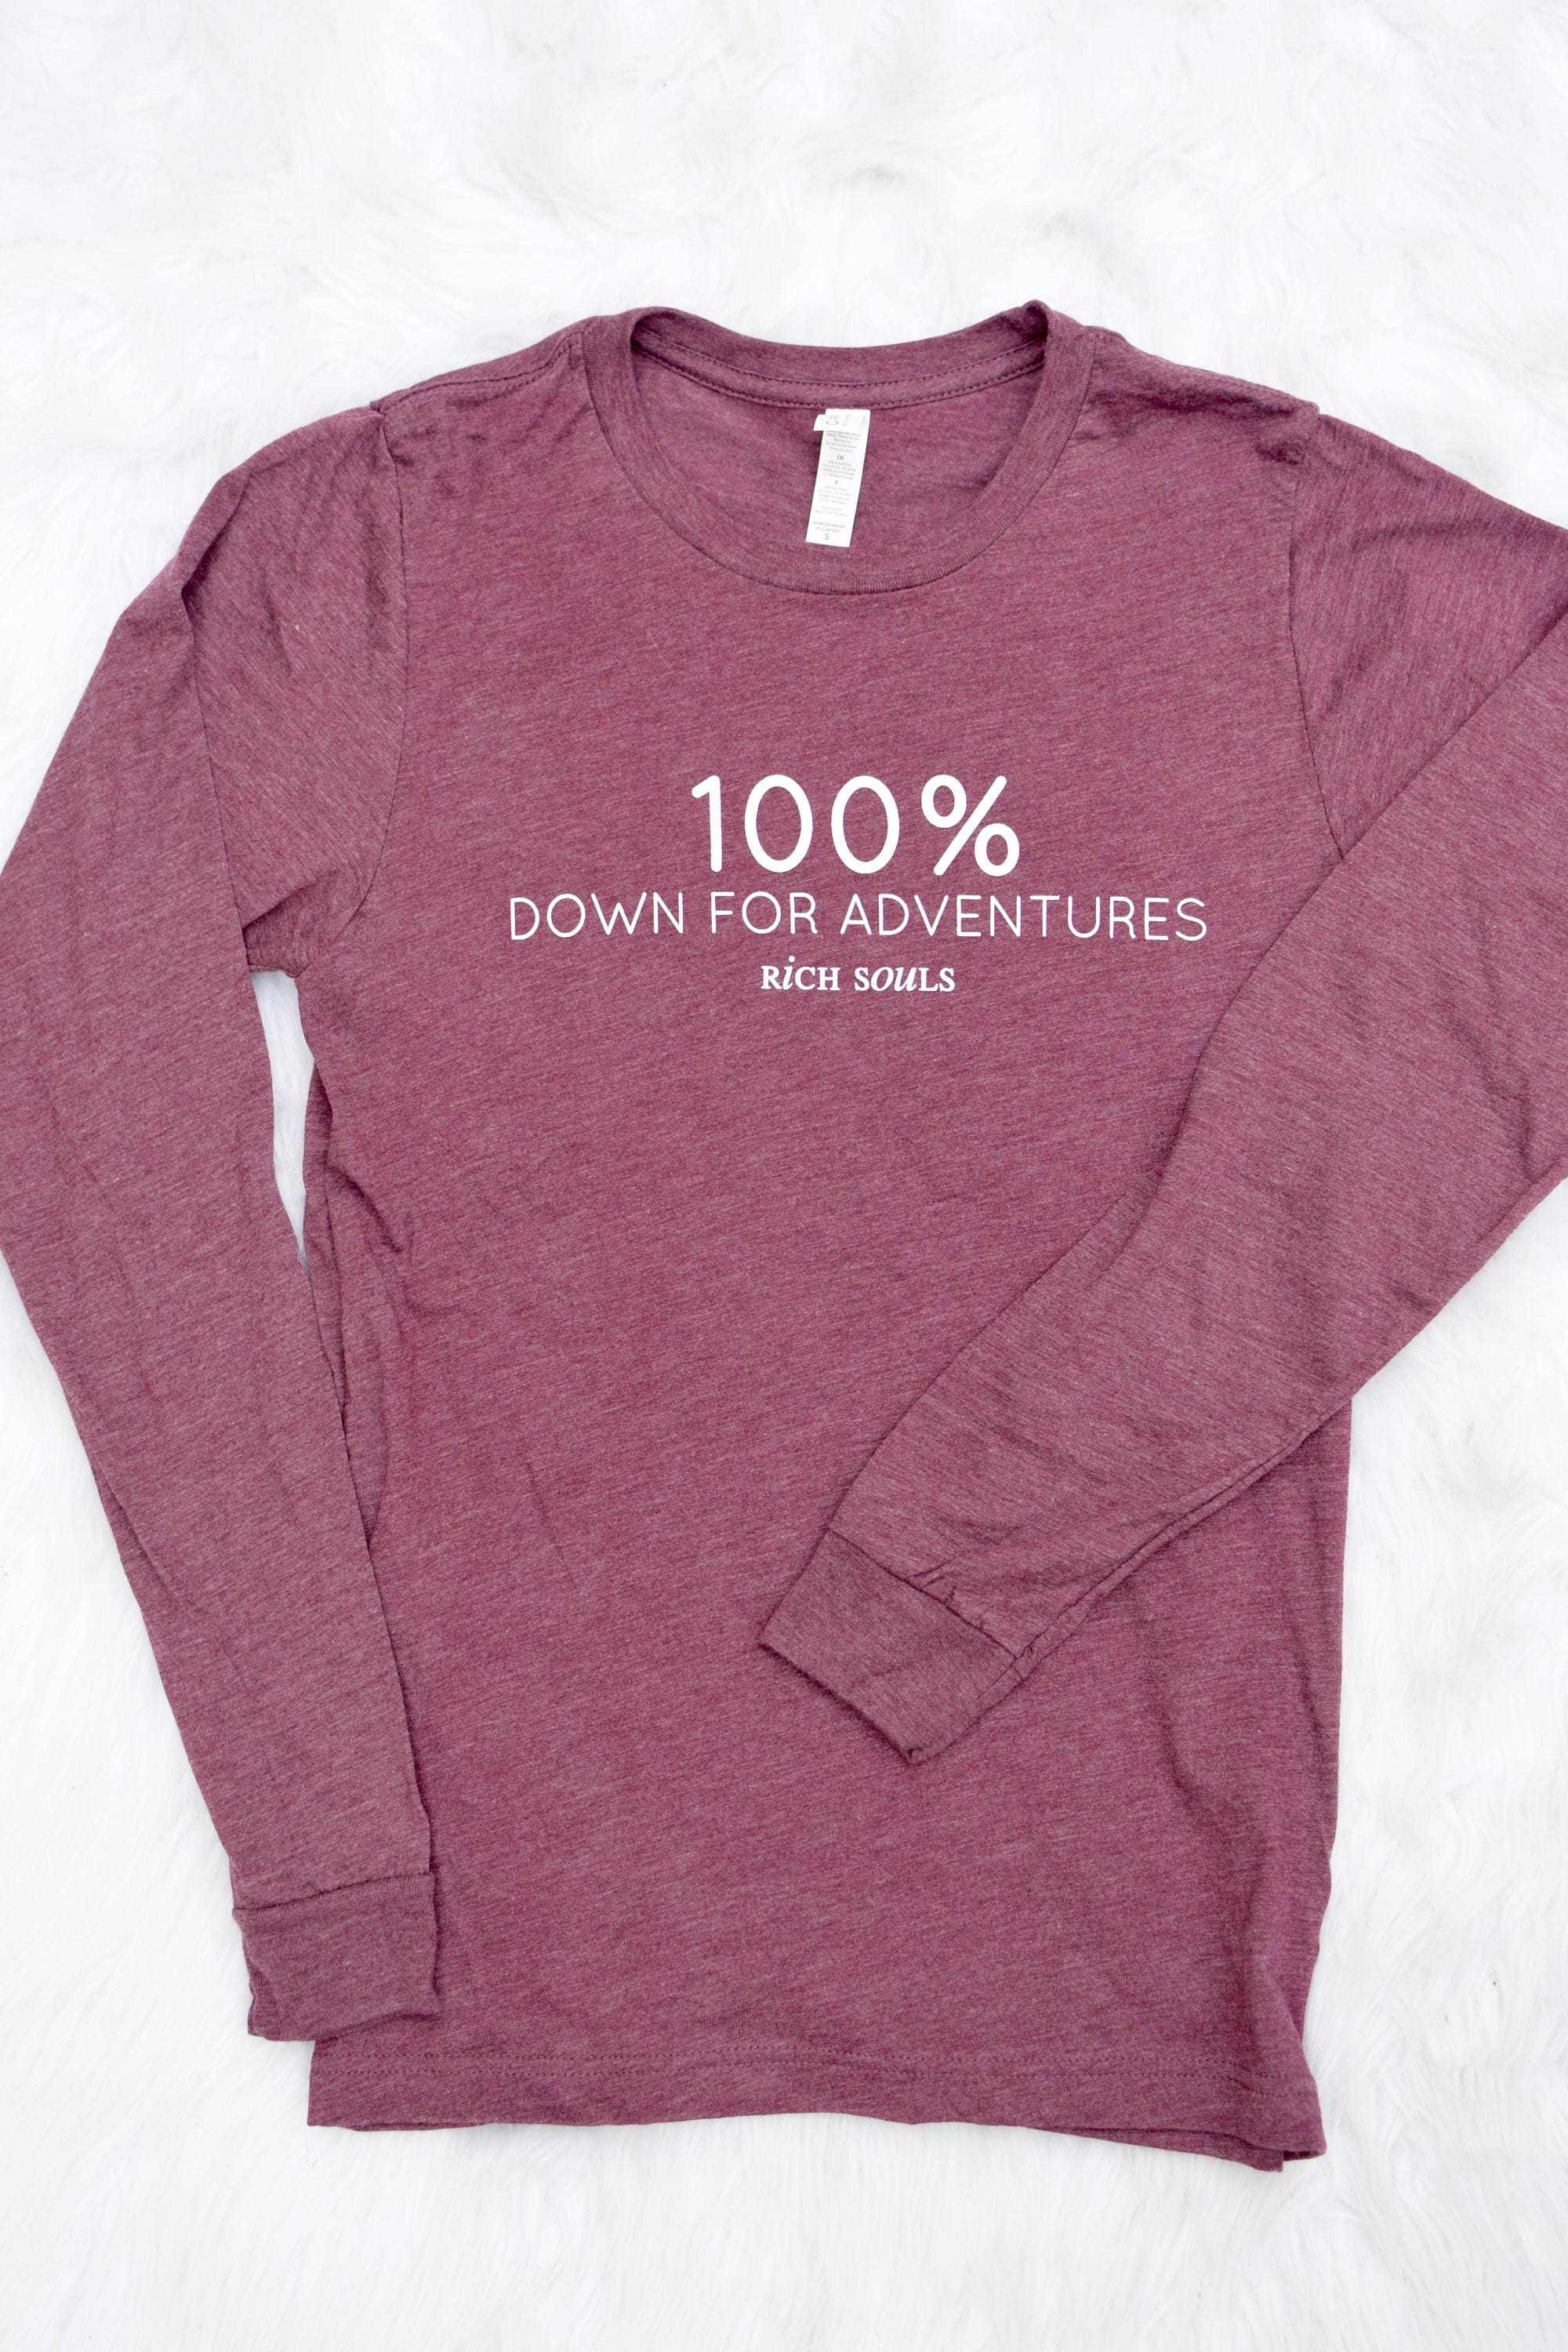 100% Down For Adventures// Adult Unisex Long Sleeve // Marron Charcoal Triblend // Comfy Tee pYRen5QoFf